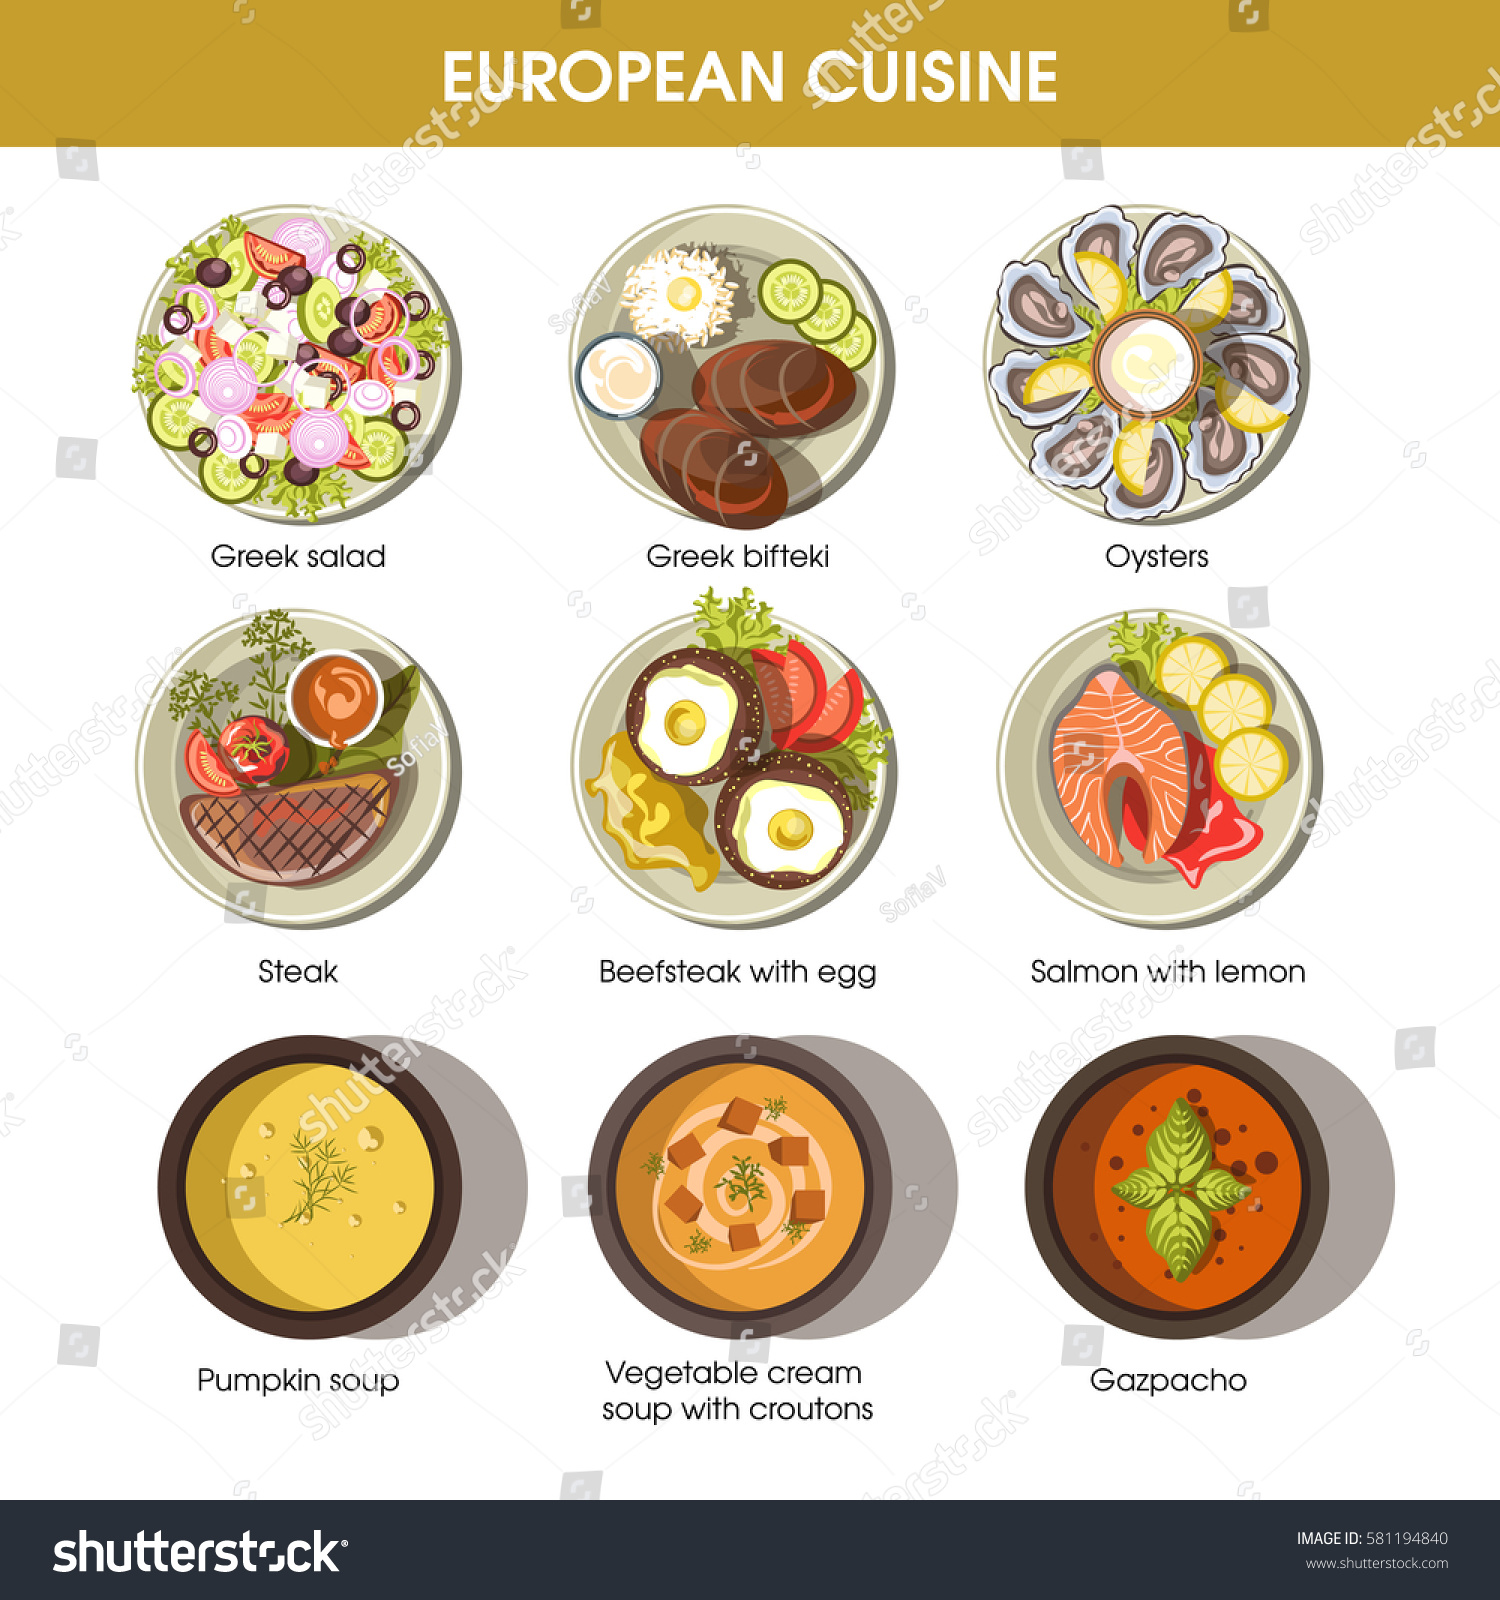 European cuisine icons restaurant menu templates stock for Apollon greek and european cuisine